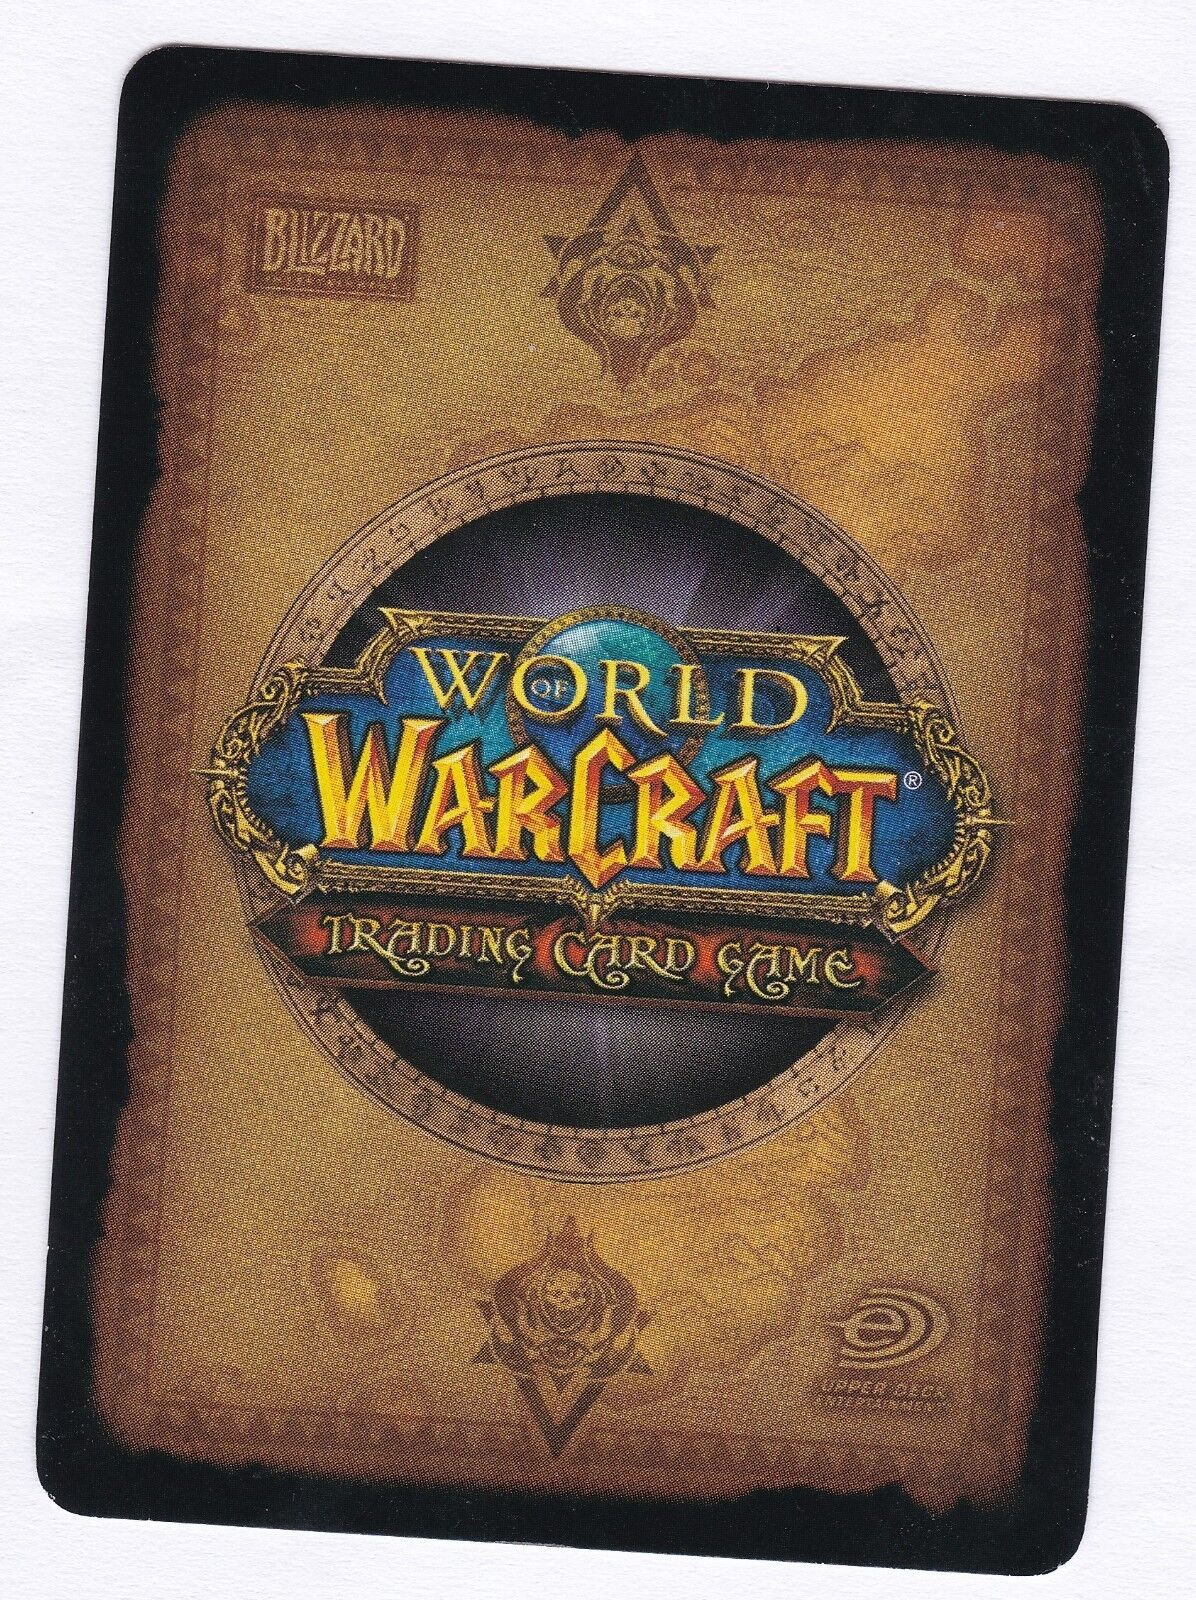 SALE    MY ENTIRE ENTIRE ENTIRE WOW TCG COLLECTION  2,100 CARDS  ALL NEAR MINT-MAKE AN OFFER  e99c97